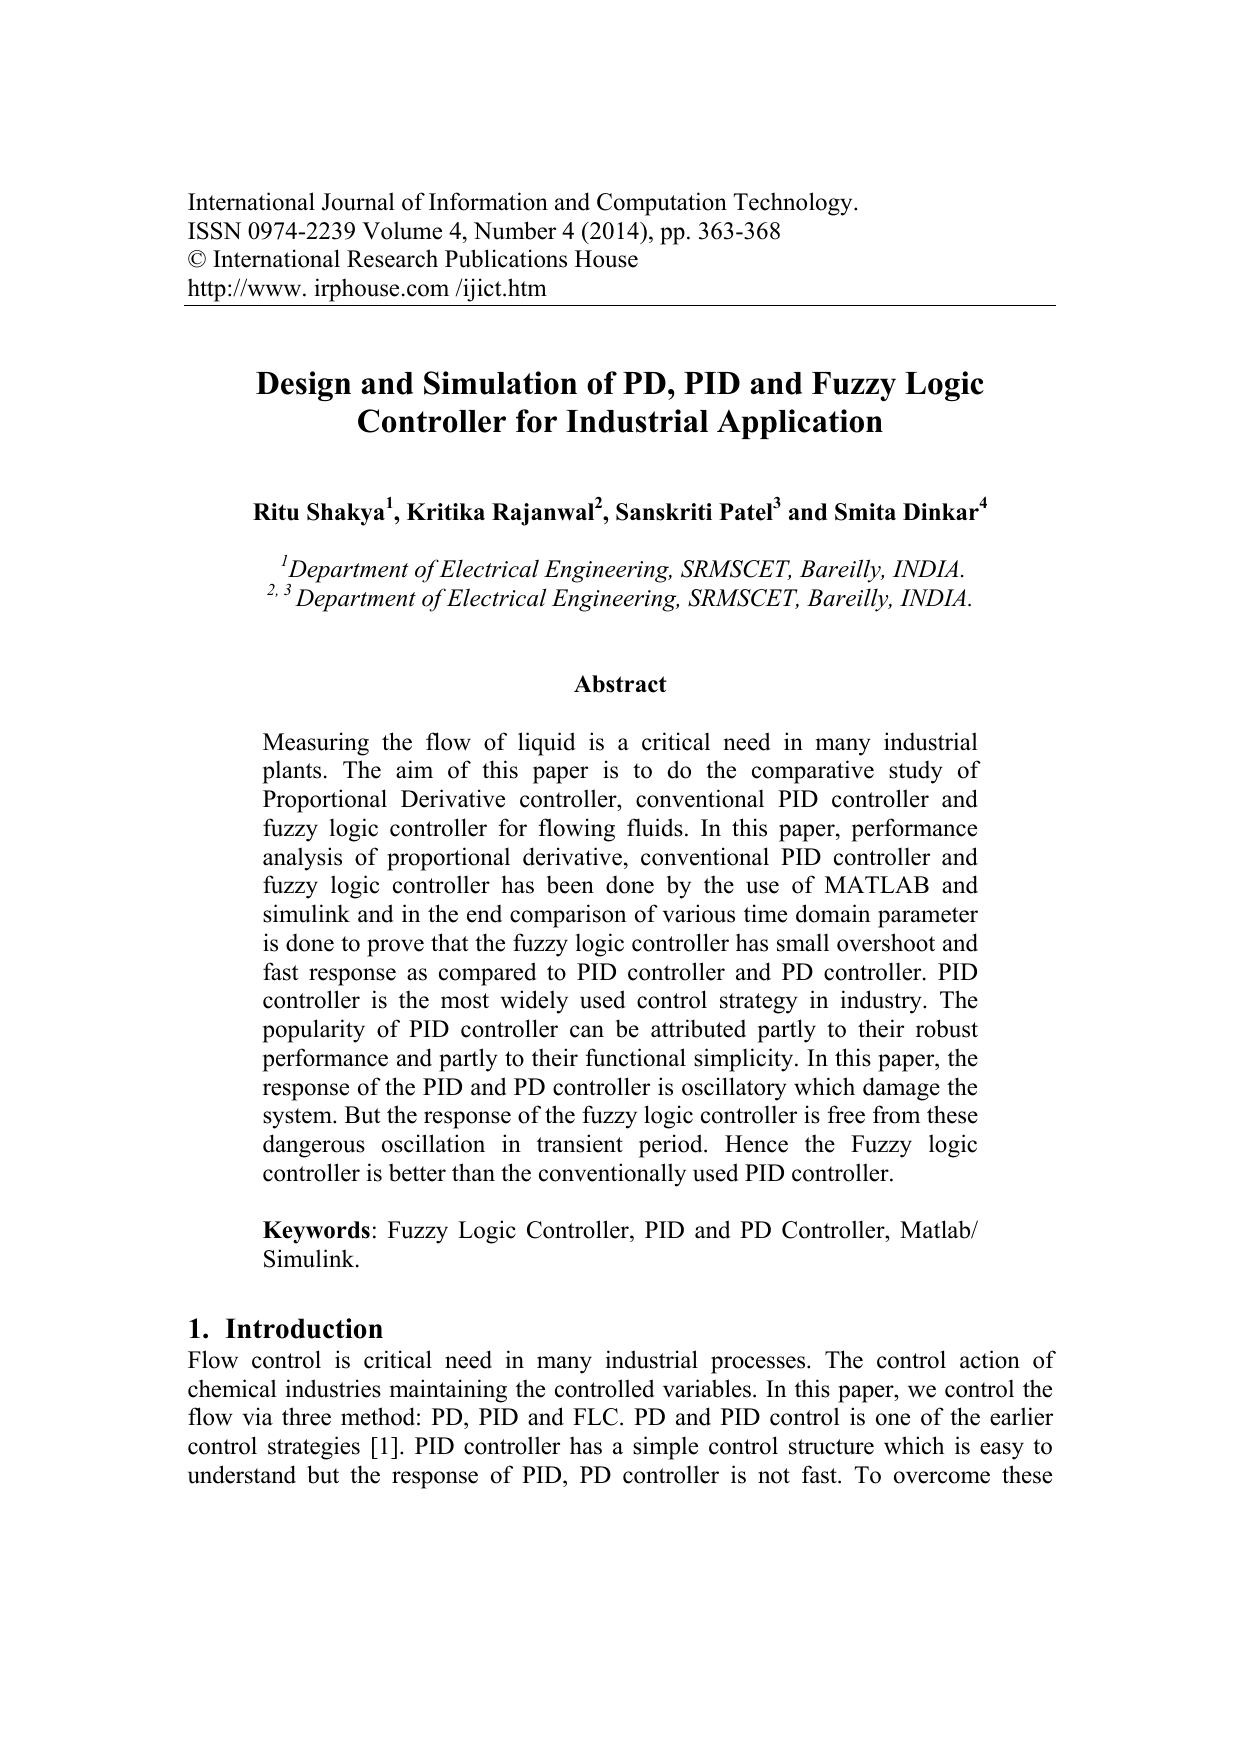 Design and Simulation of PD, PID and Fuzzy Logic Controller for